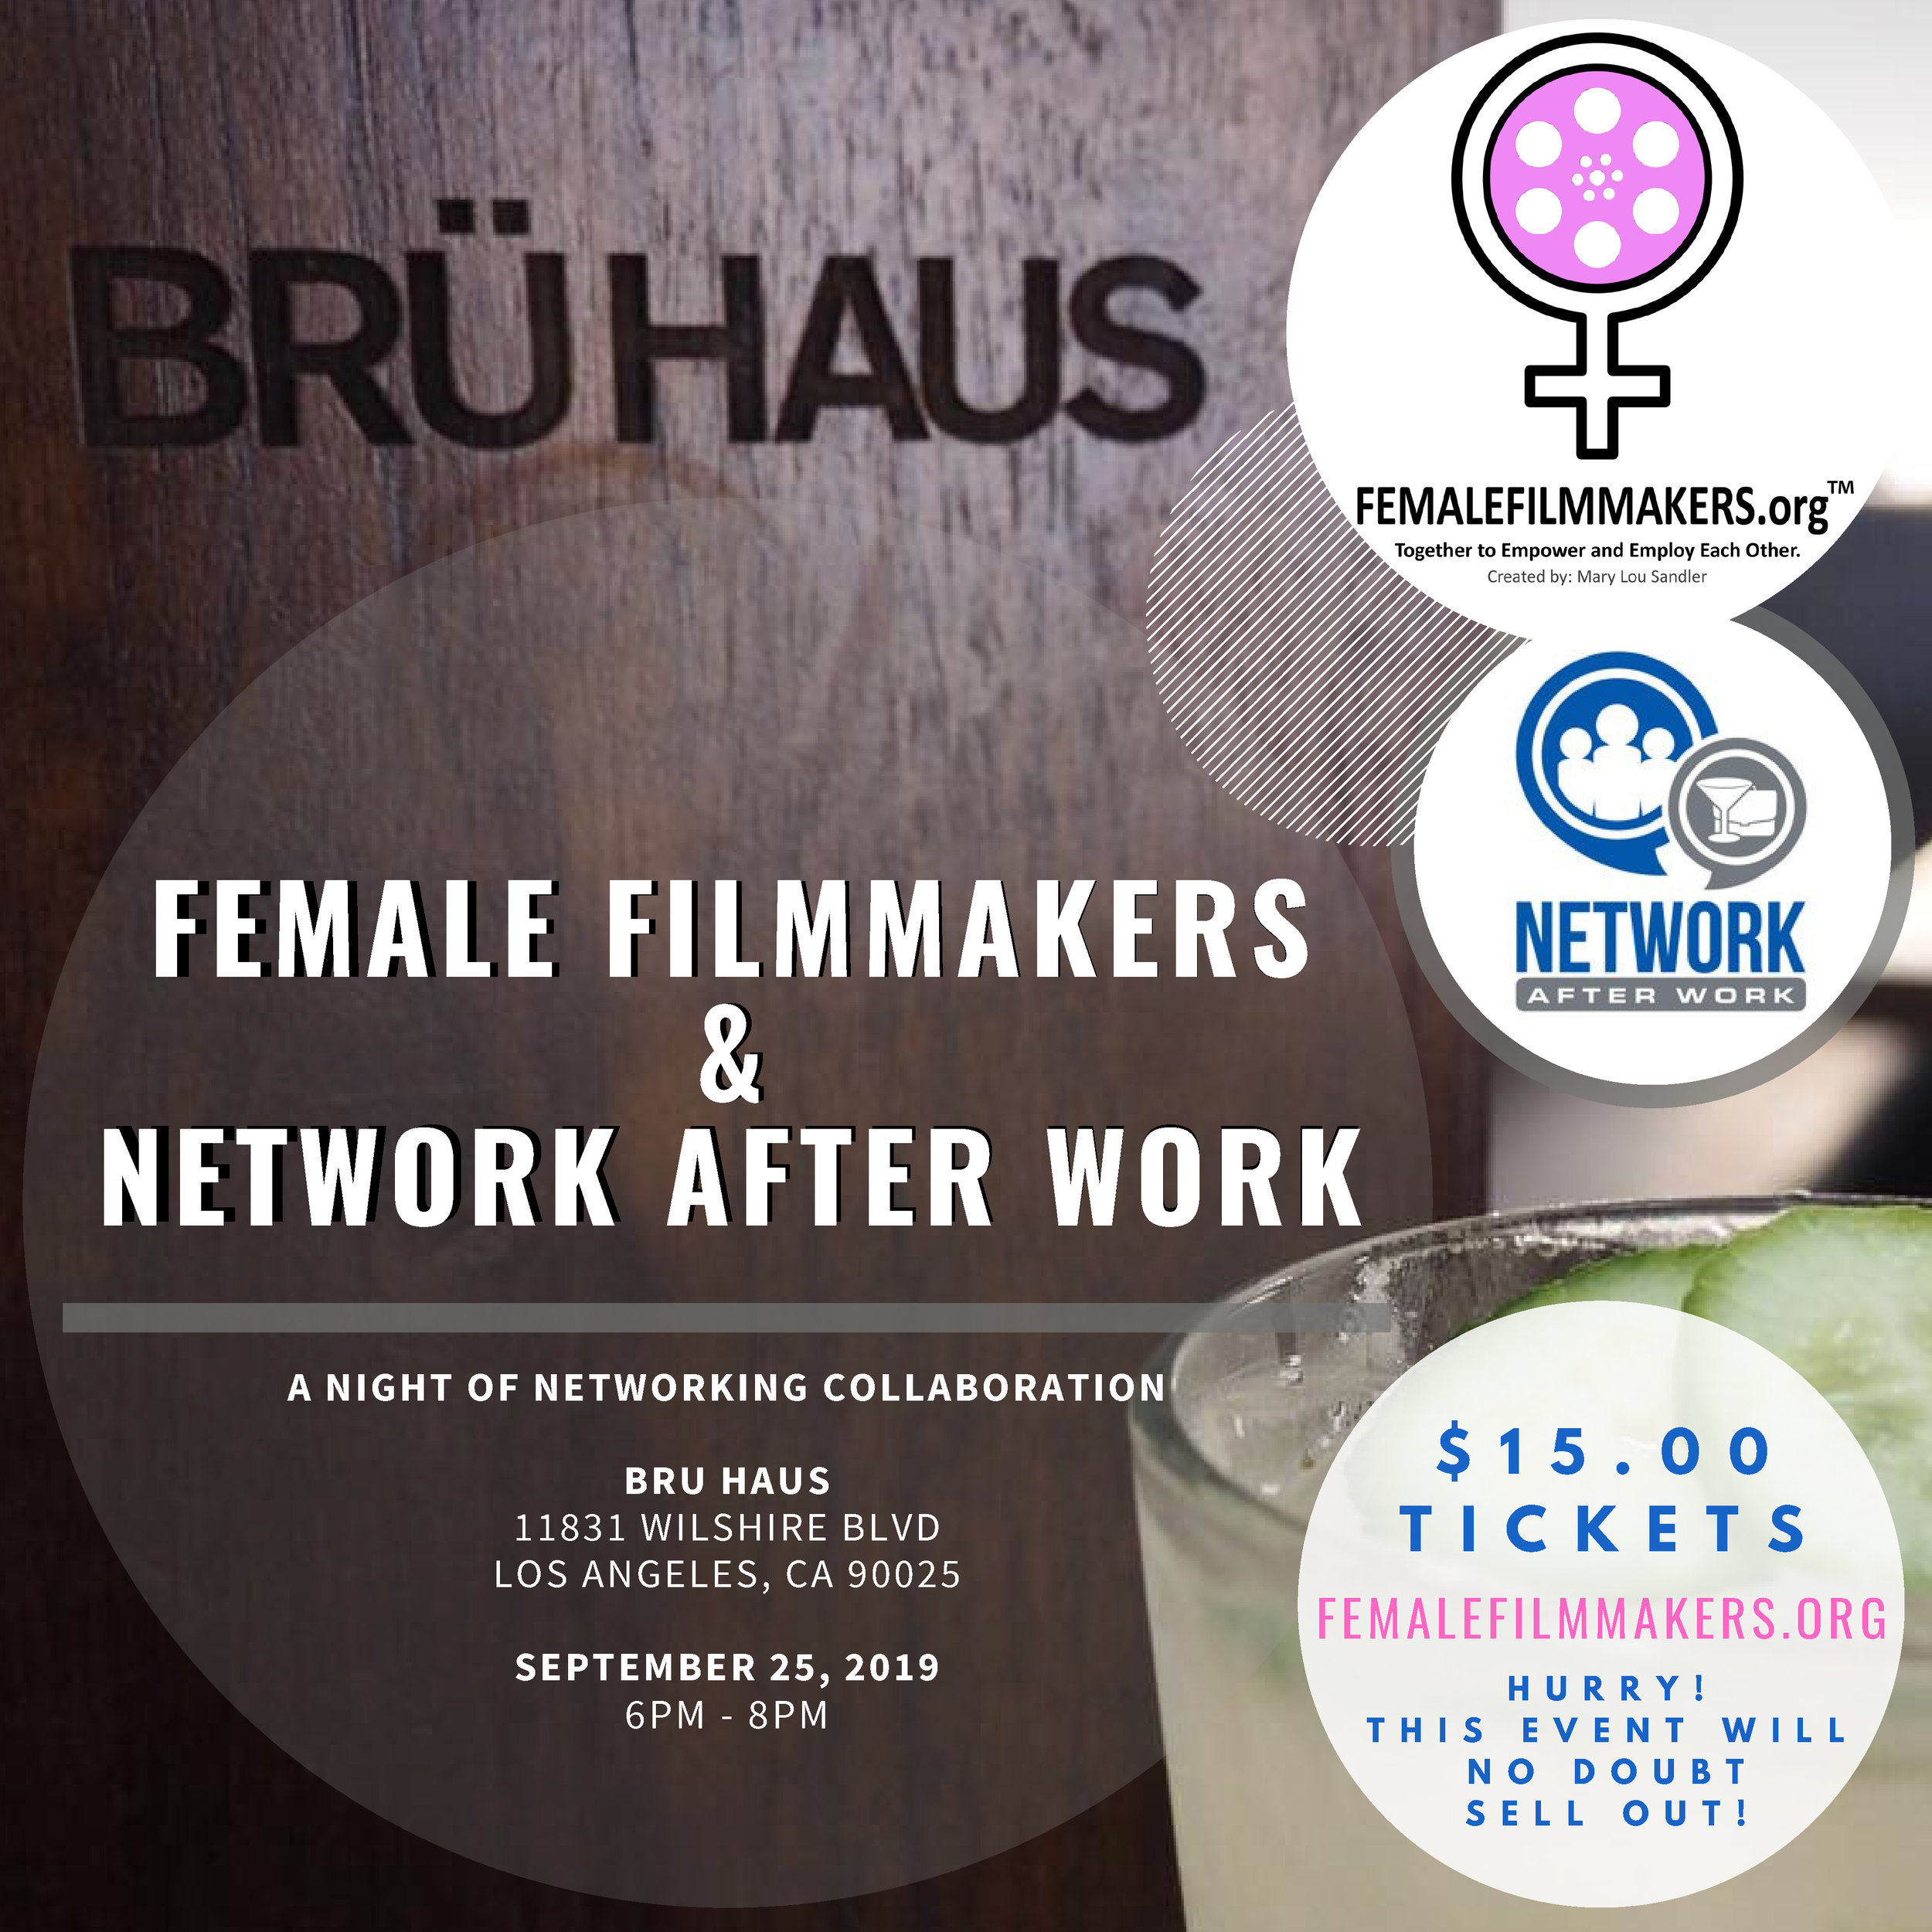 Our 2nd Collaboration Networking Event! - Female Filmmakers is Collaborating with Network After Work, one of the LARGEST Networking Companies in the Nation!September 25, 2019 from 6-8pmYOUR TICKET INCLUDES:Color-Connect Name BadgeOne Complimentary Drink until 7pm (selected by the venue)Complimentary Light Snacks (provided by the venue)ALL GENDERS & NONBINARY ARE WELCOME!